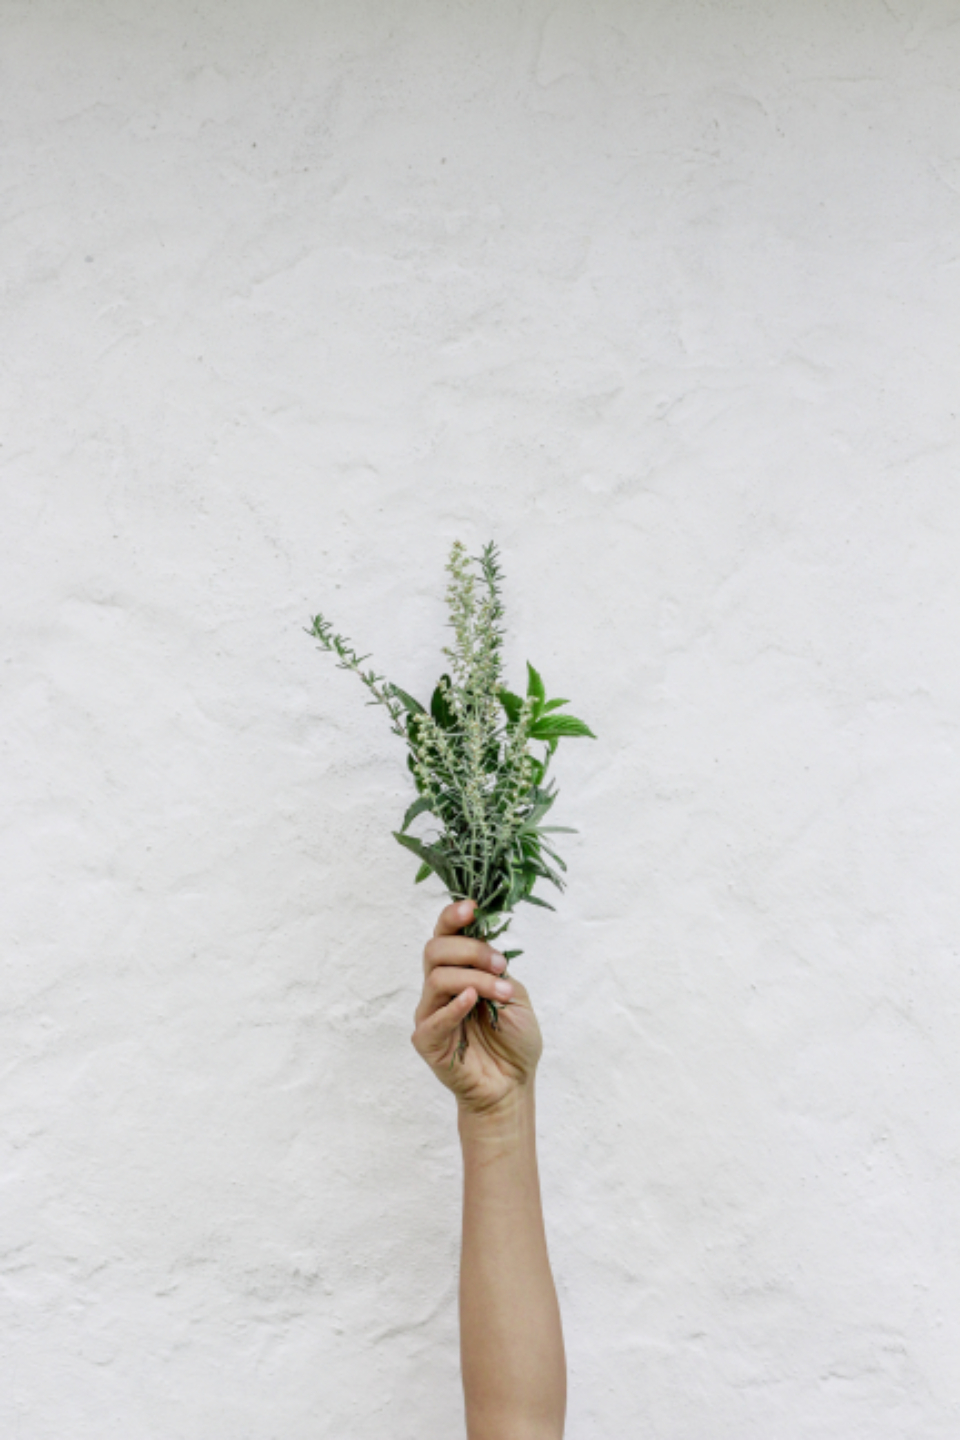 hand holding flowers isolated background texture copy space bloom blossom fresh garden nature natural wall bouquet arm leaves leaf feminine floral spring plant